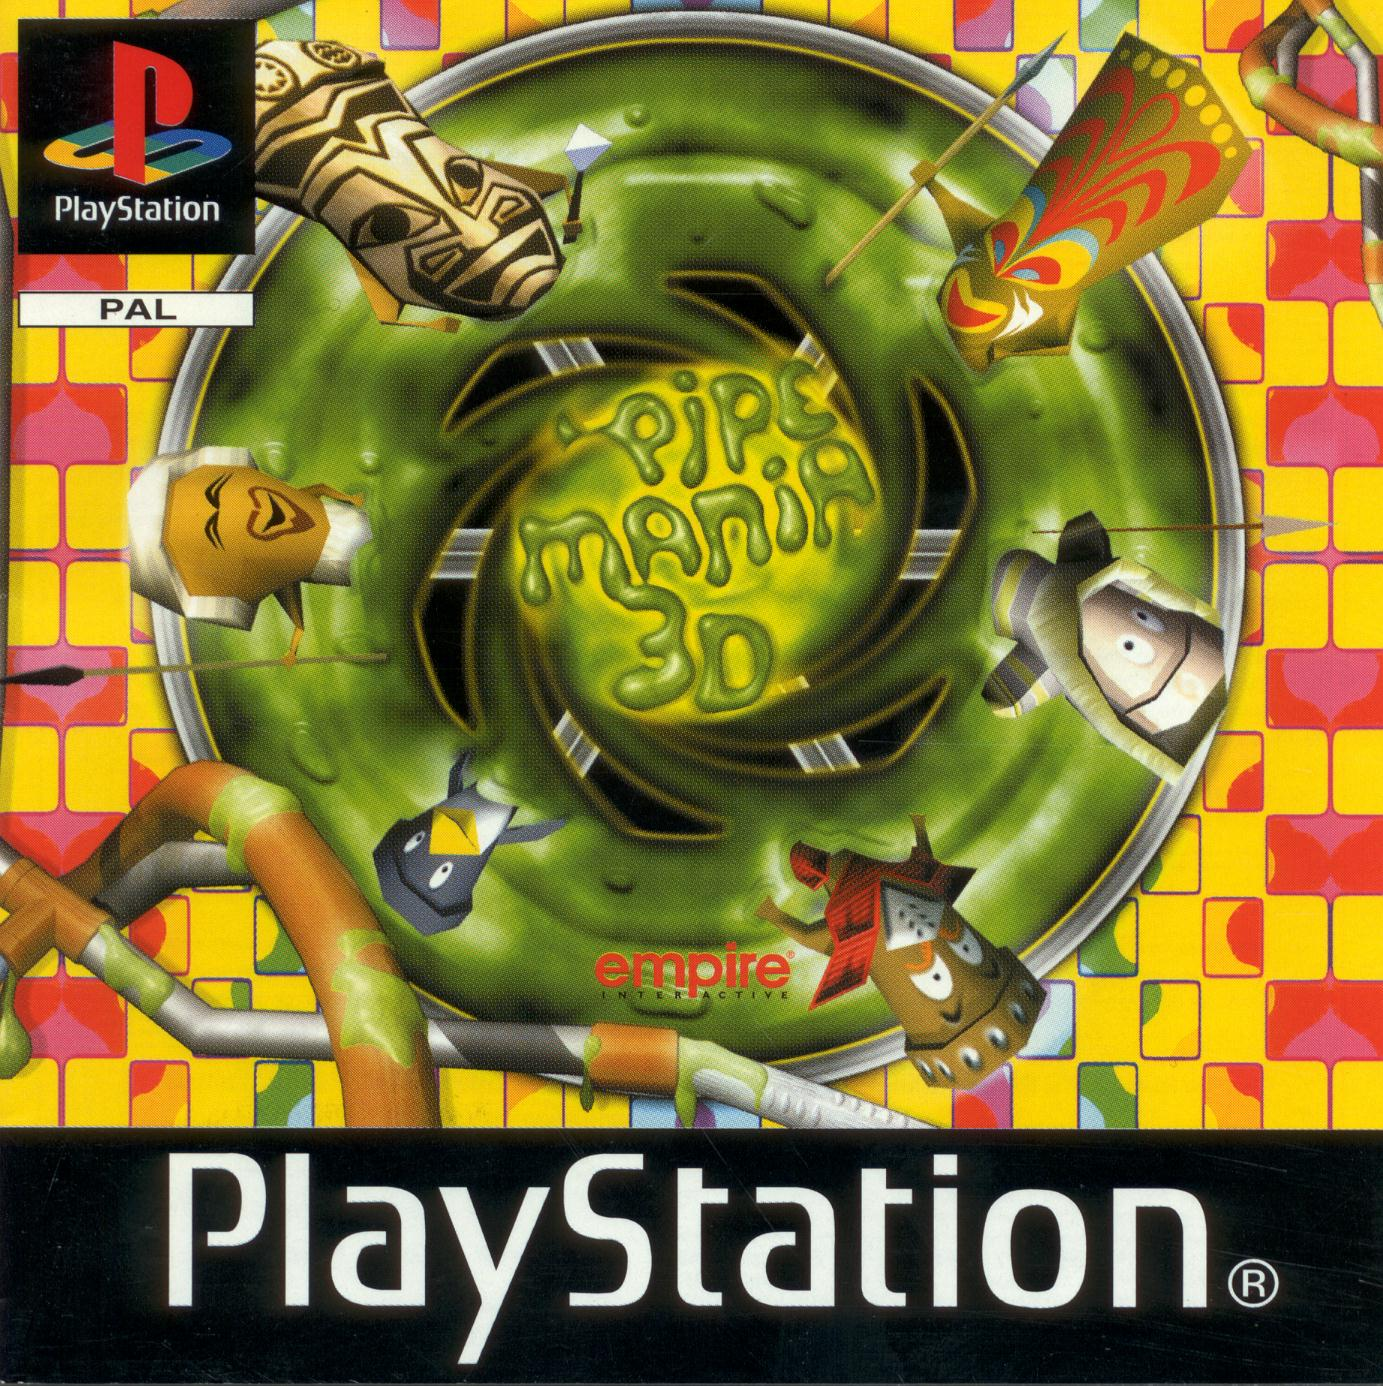 PLAYSTATION (PS2) COVER